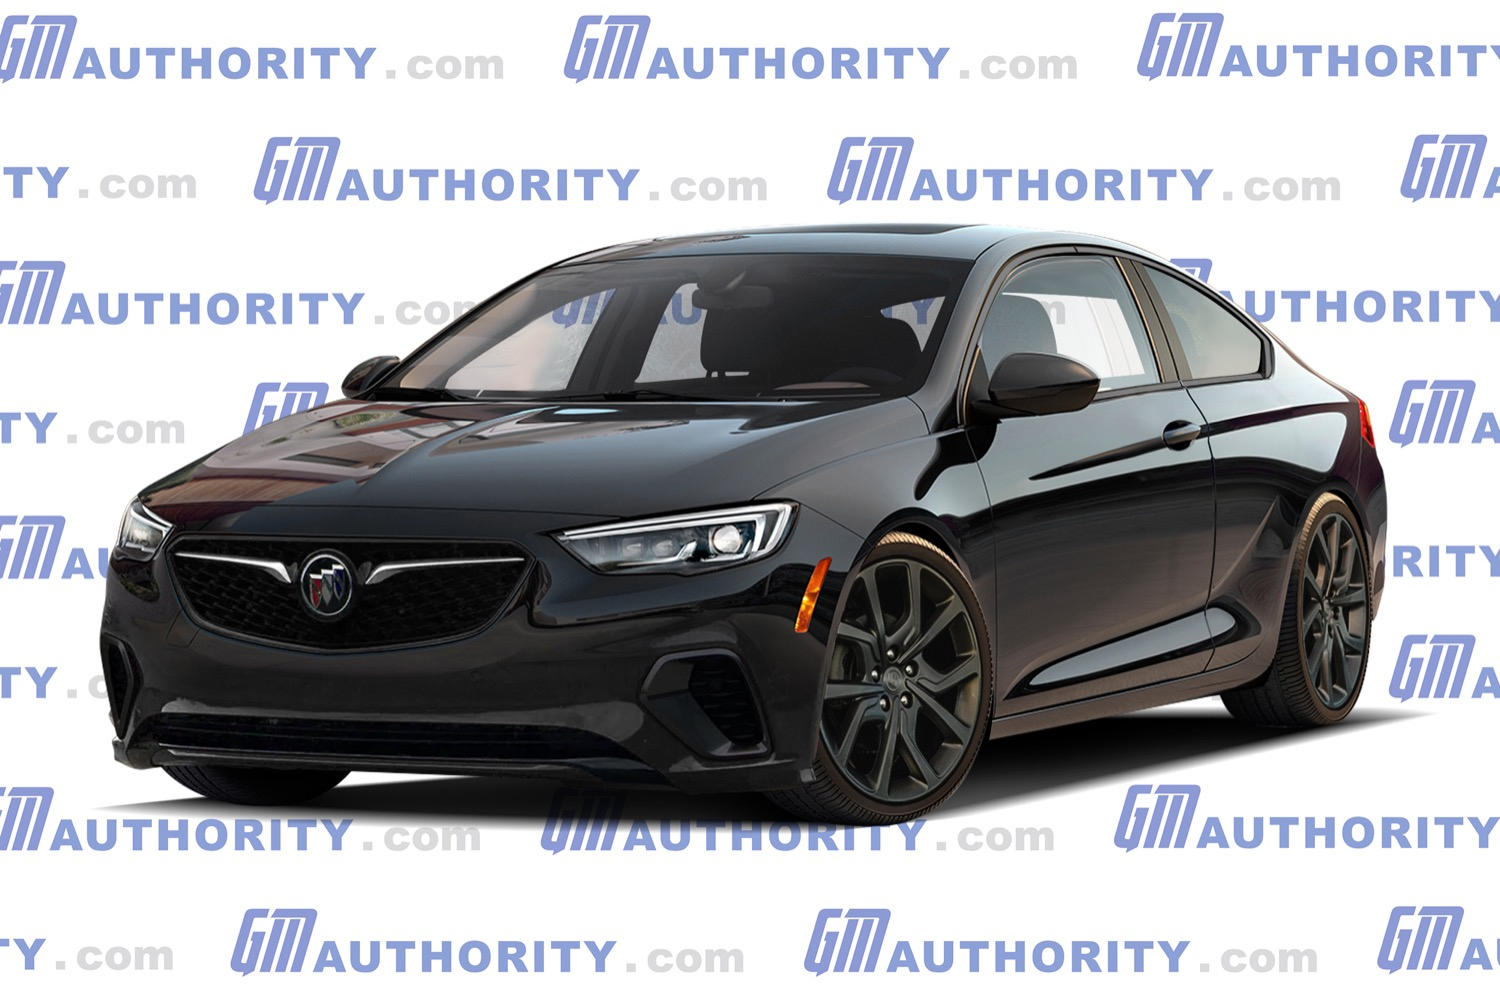 Modern Buick Regal Gnx Rendered | Gm Authority 2022 Buick Regal Images, Price, Performance